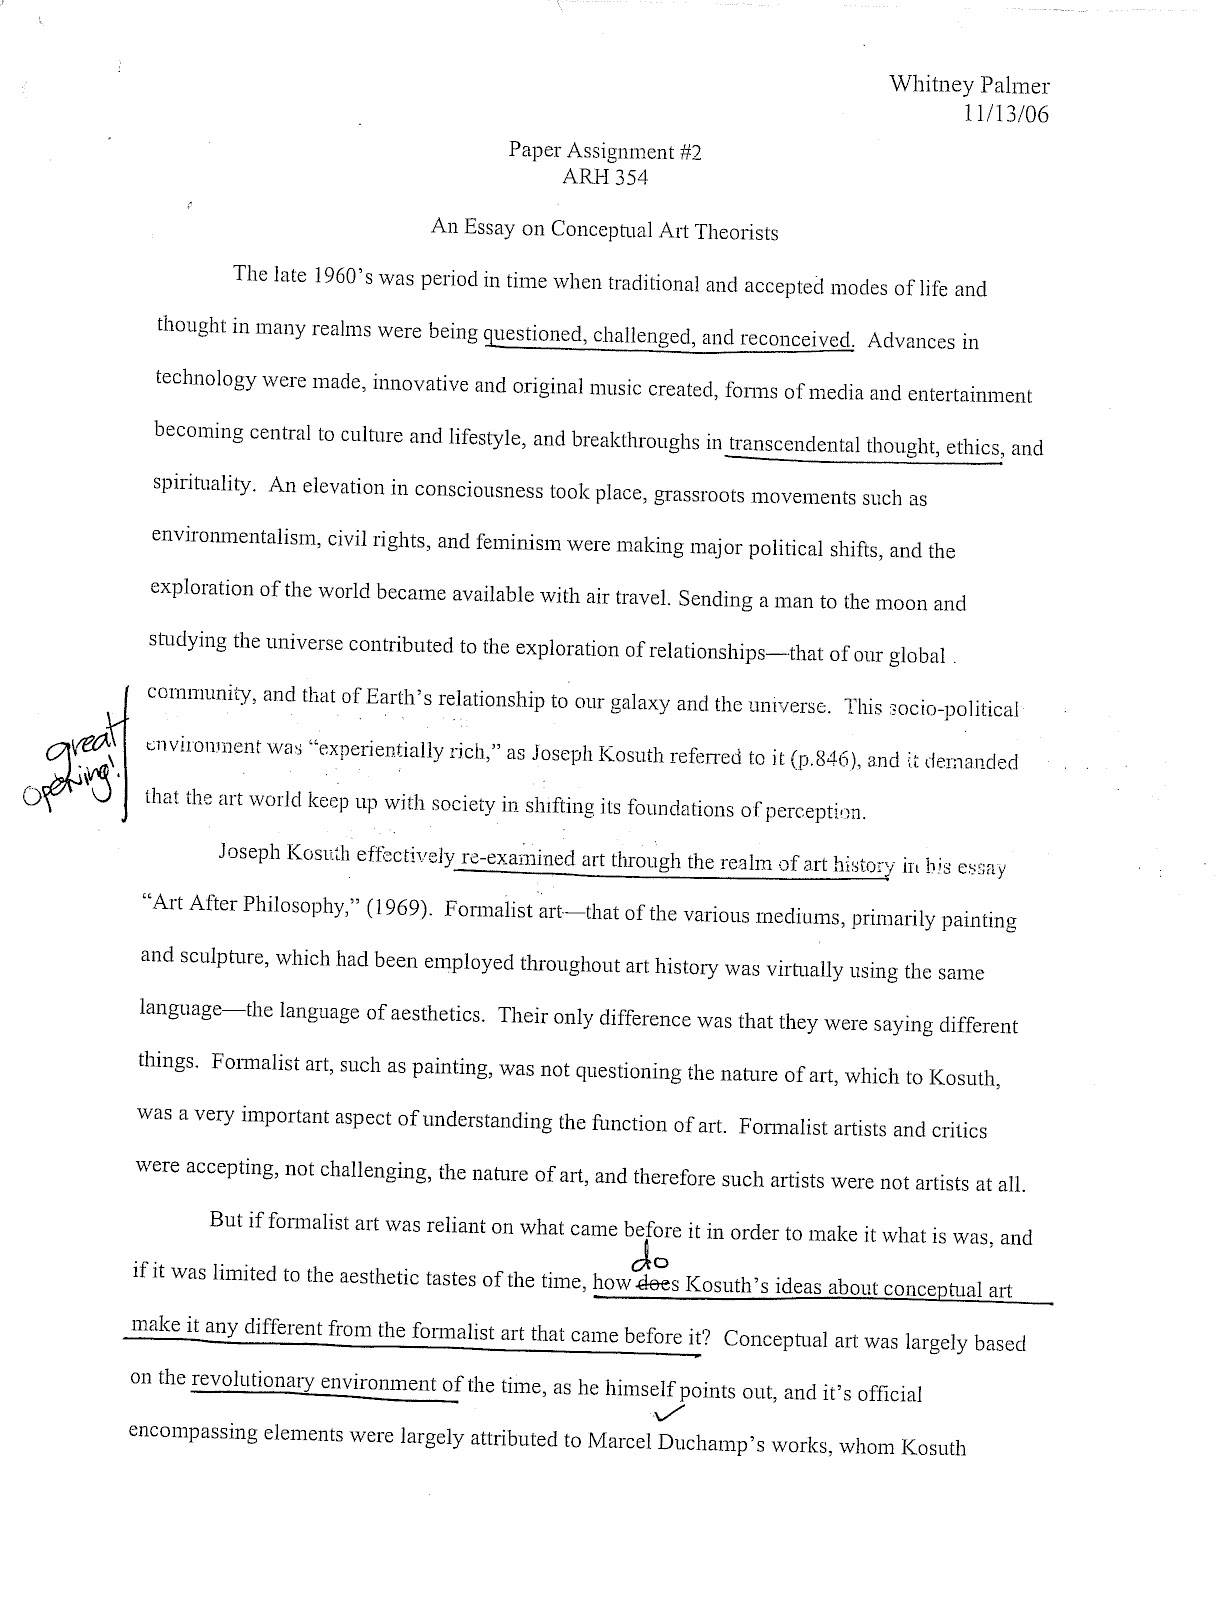 history of soccer essay art history essays art history essays  art history essays art history essays compucenter the aim of this essay from art history fall